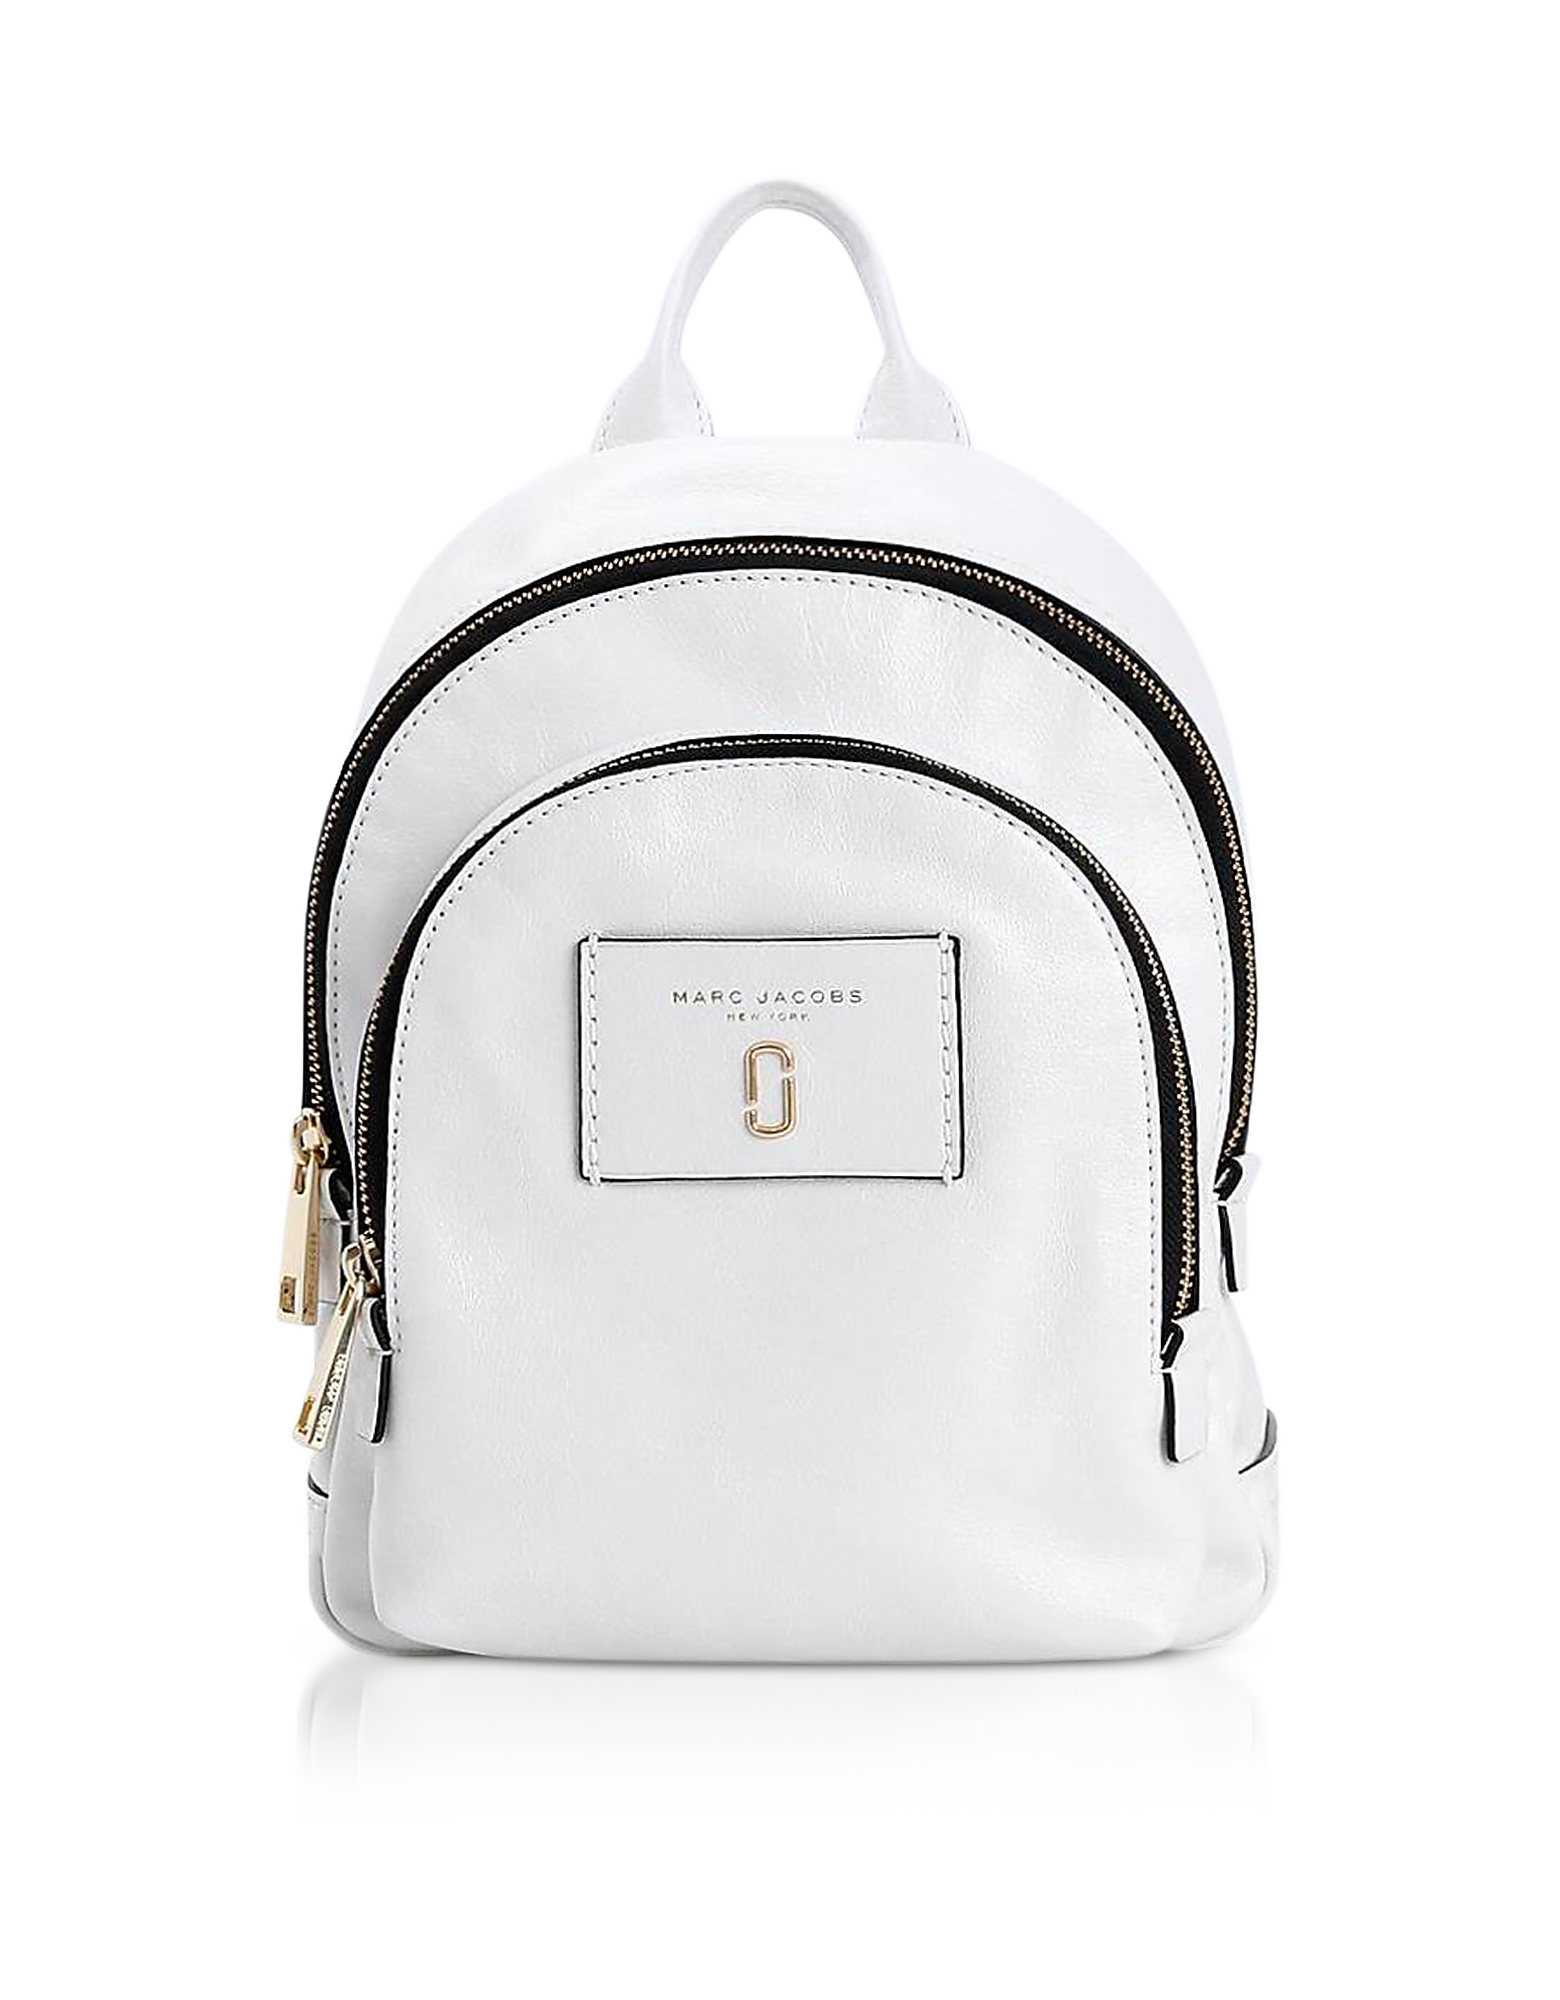 Marc Jacobs Handbags, Glossy Leather Mini Double Backpack